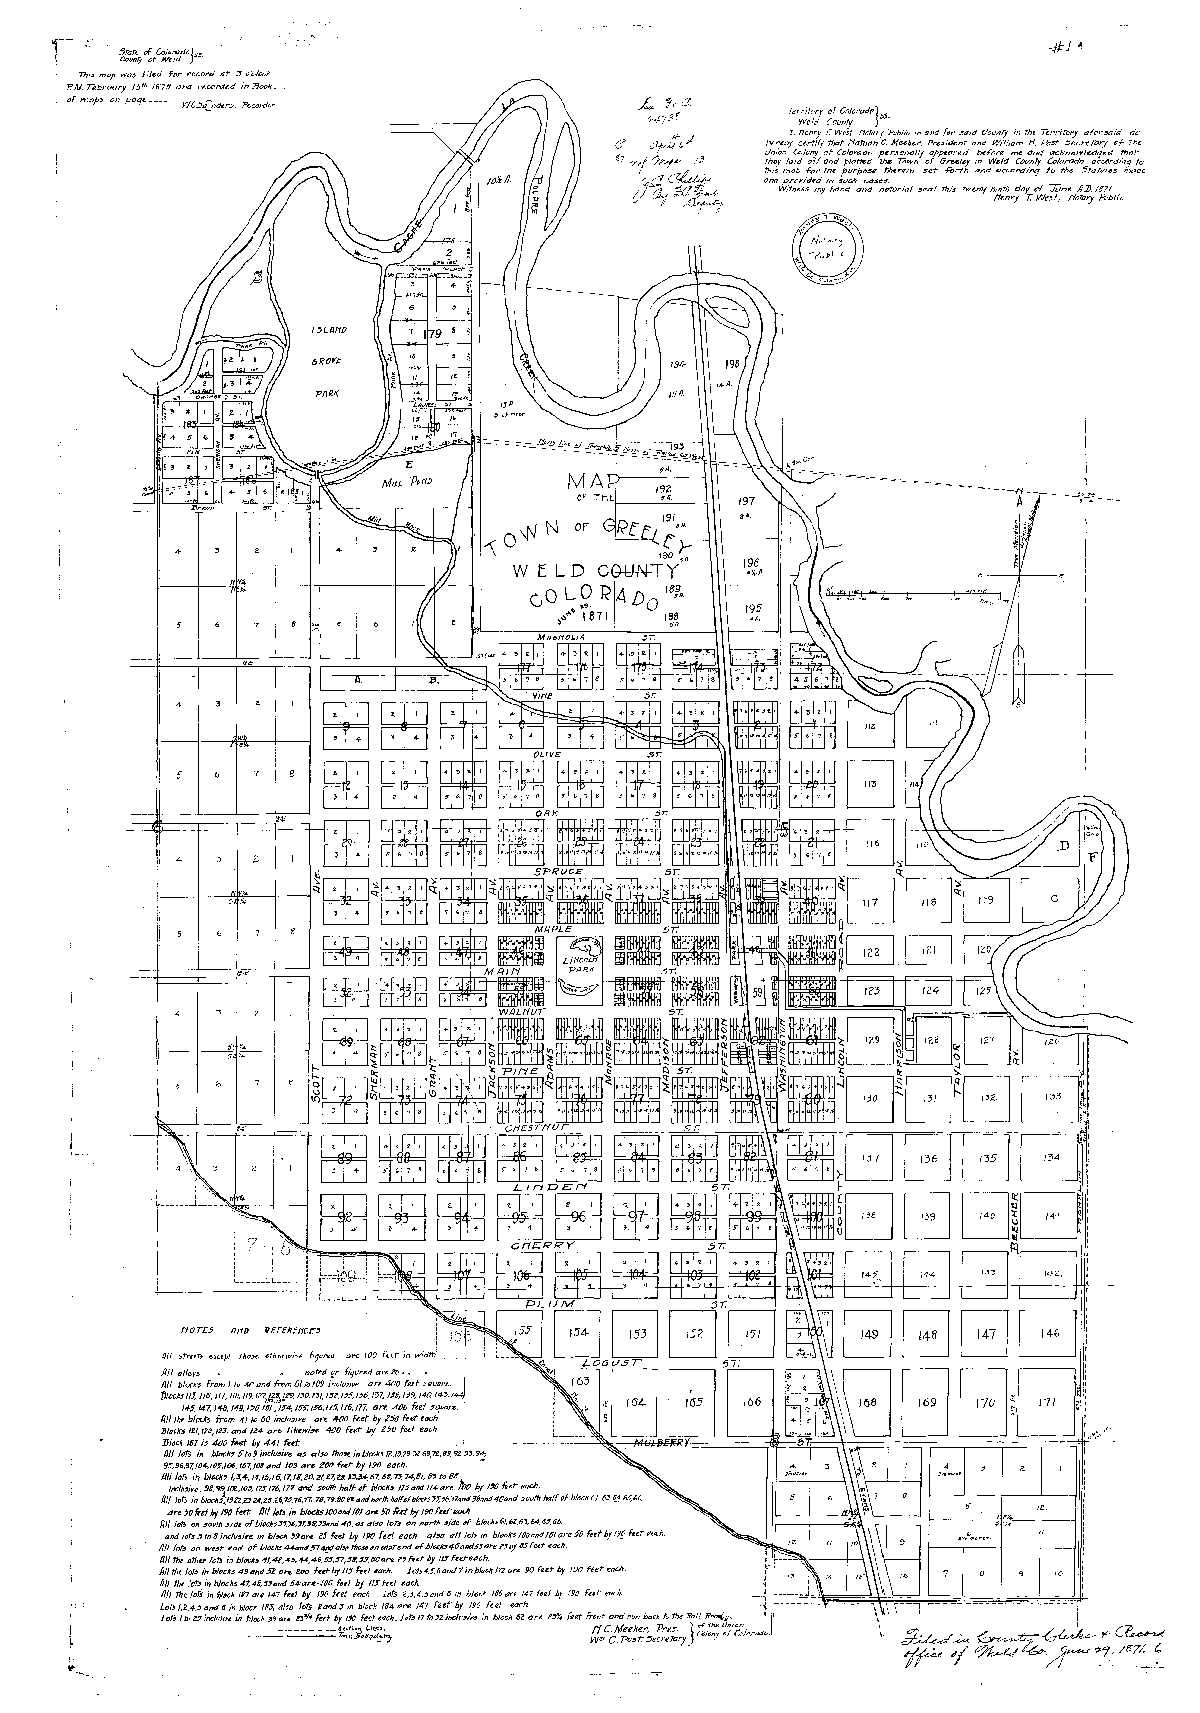 Full 1871 Map of Greeley